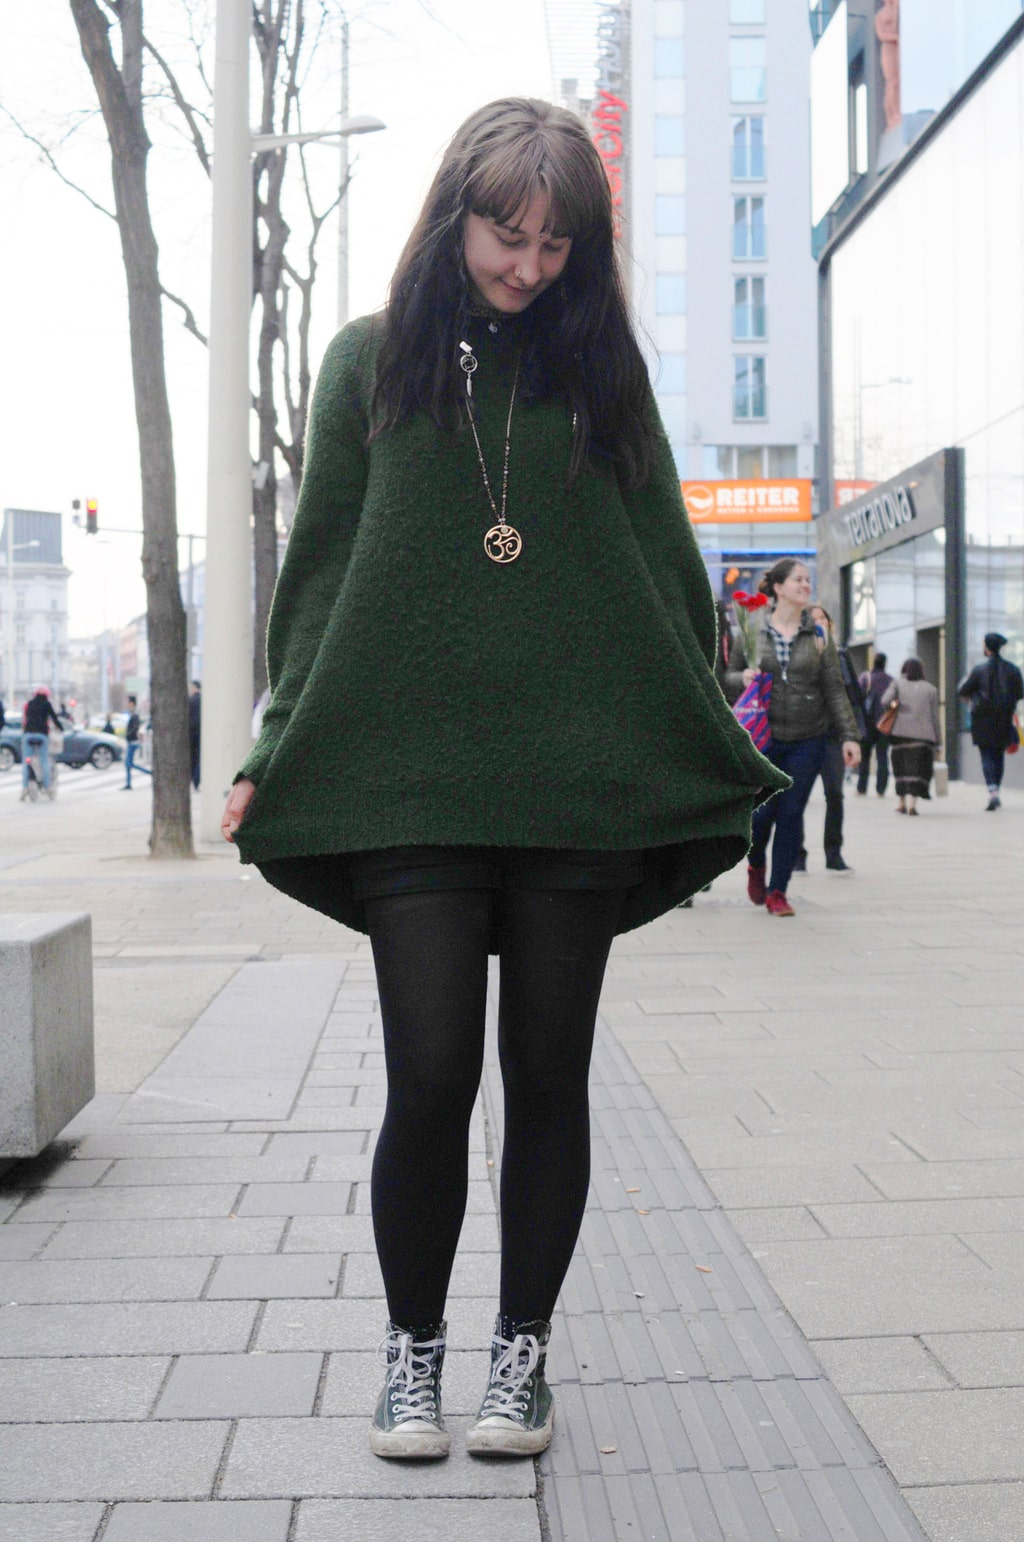 Fashion at the University of Vienna: Student Vroni wears an oversized sweater, tights, Converse, and statement jewelry